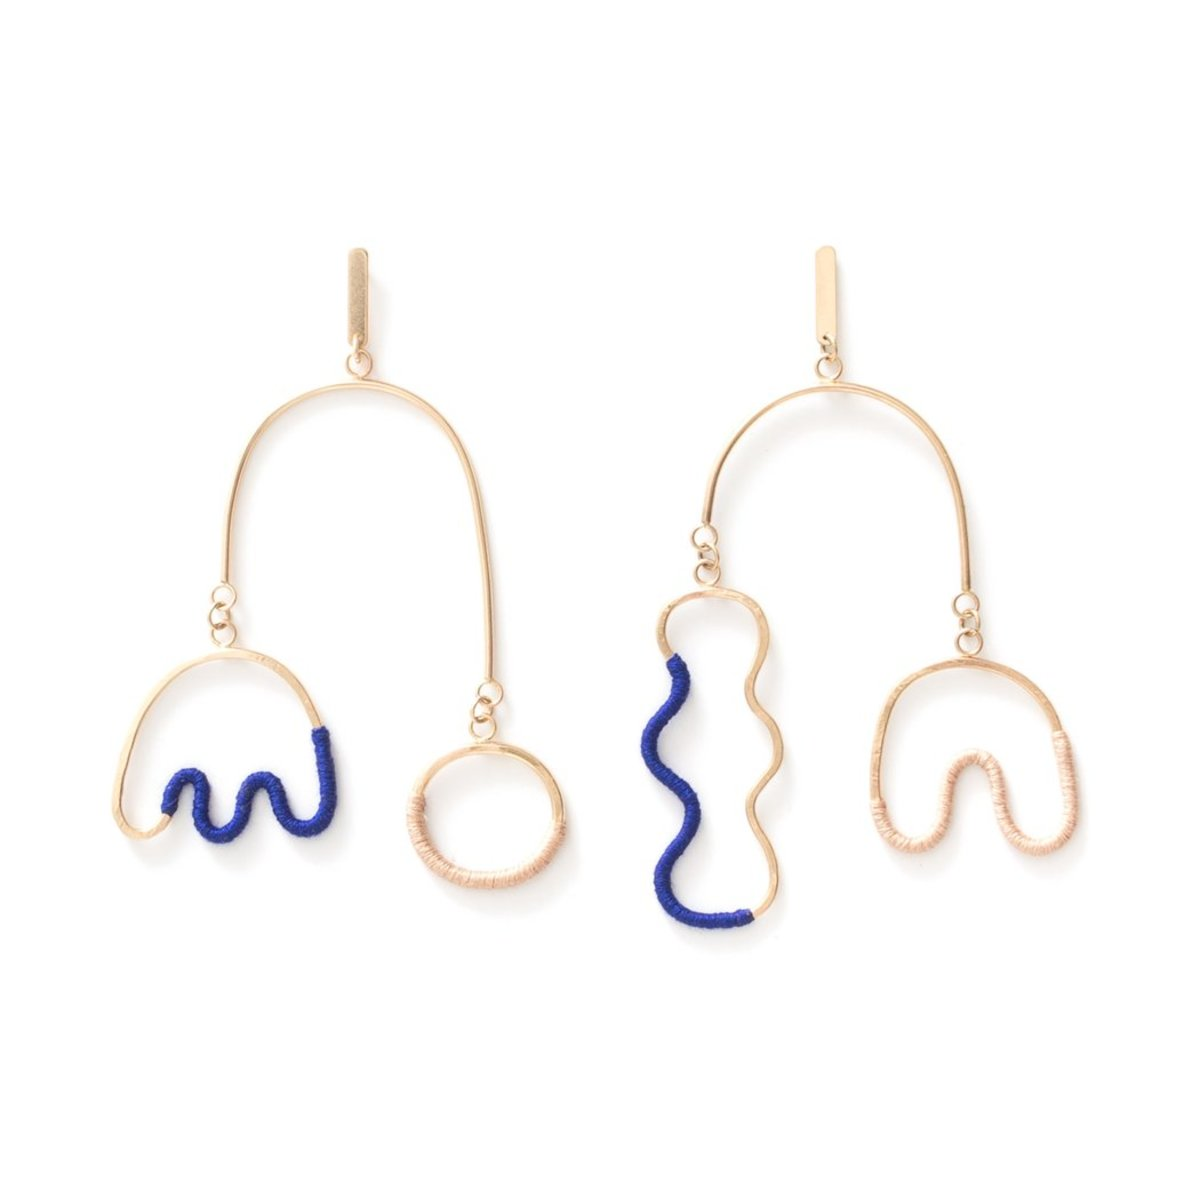 Coba Mobile Earrings 240 Available At Wkndla